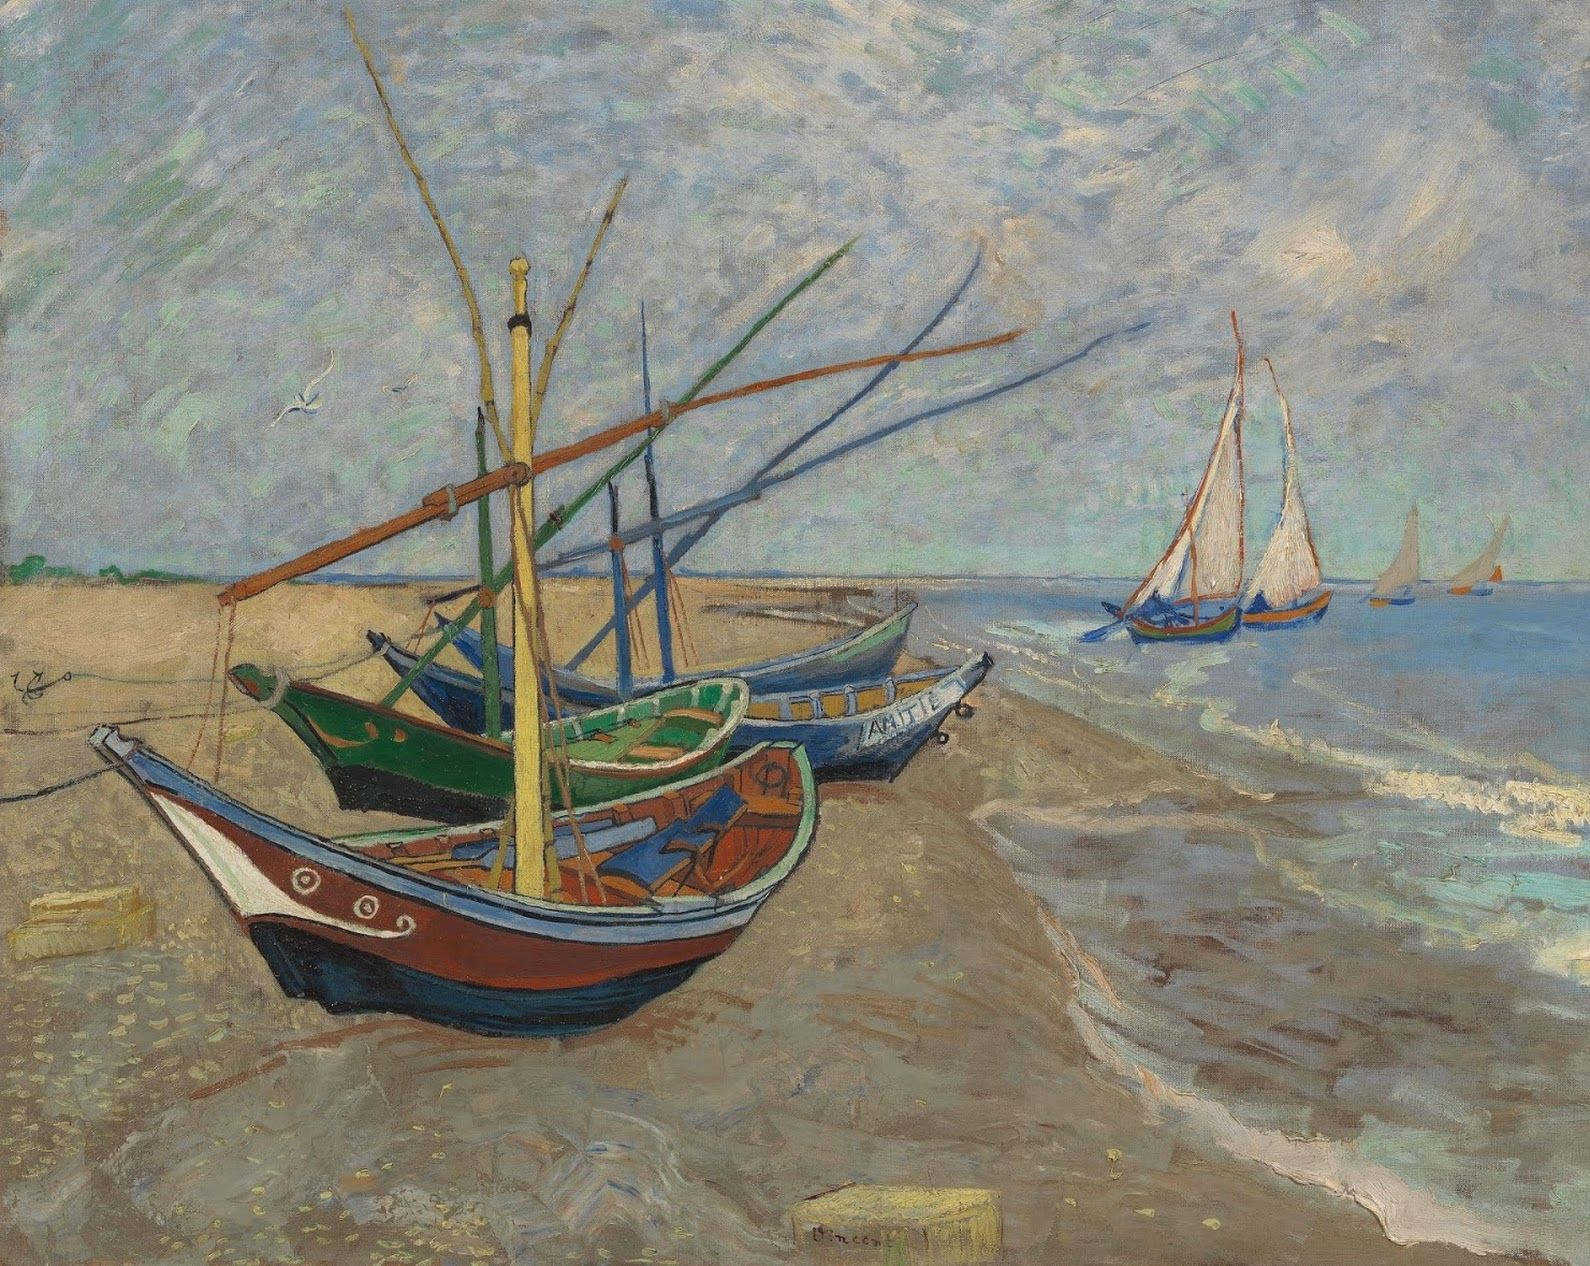 The boats are painted in an overly two-dimensional way, compared to the irregular surface of the sandy beach. They're made up of areas of uniform colour... - Van Gogh Museum - Google+